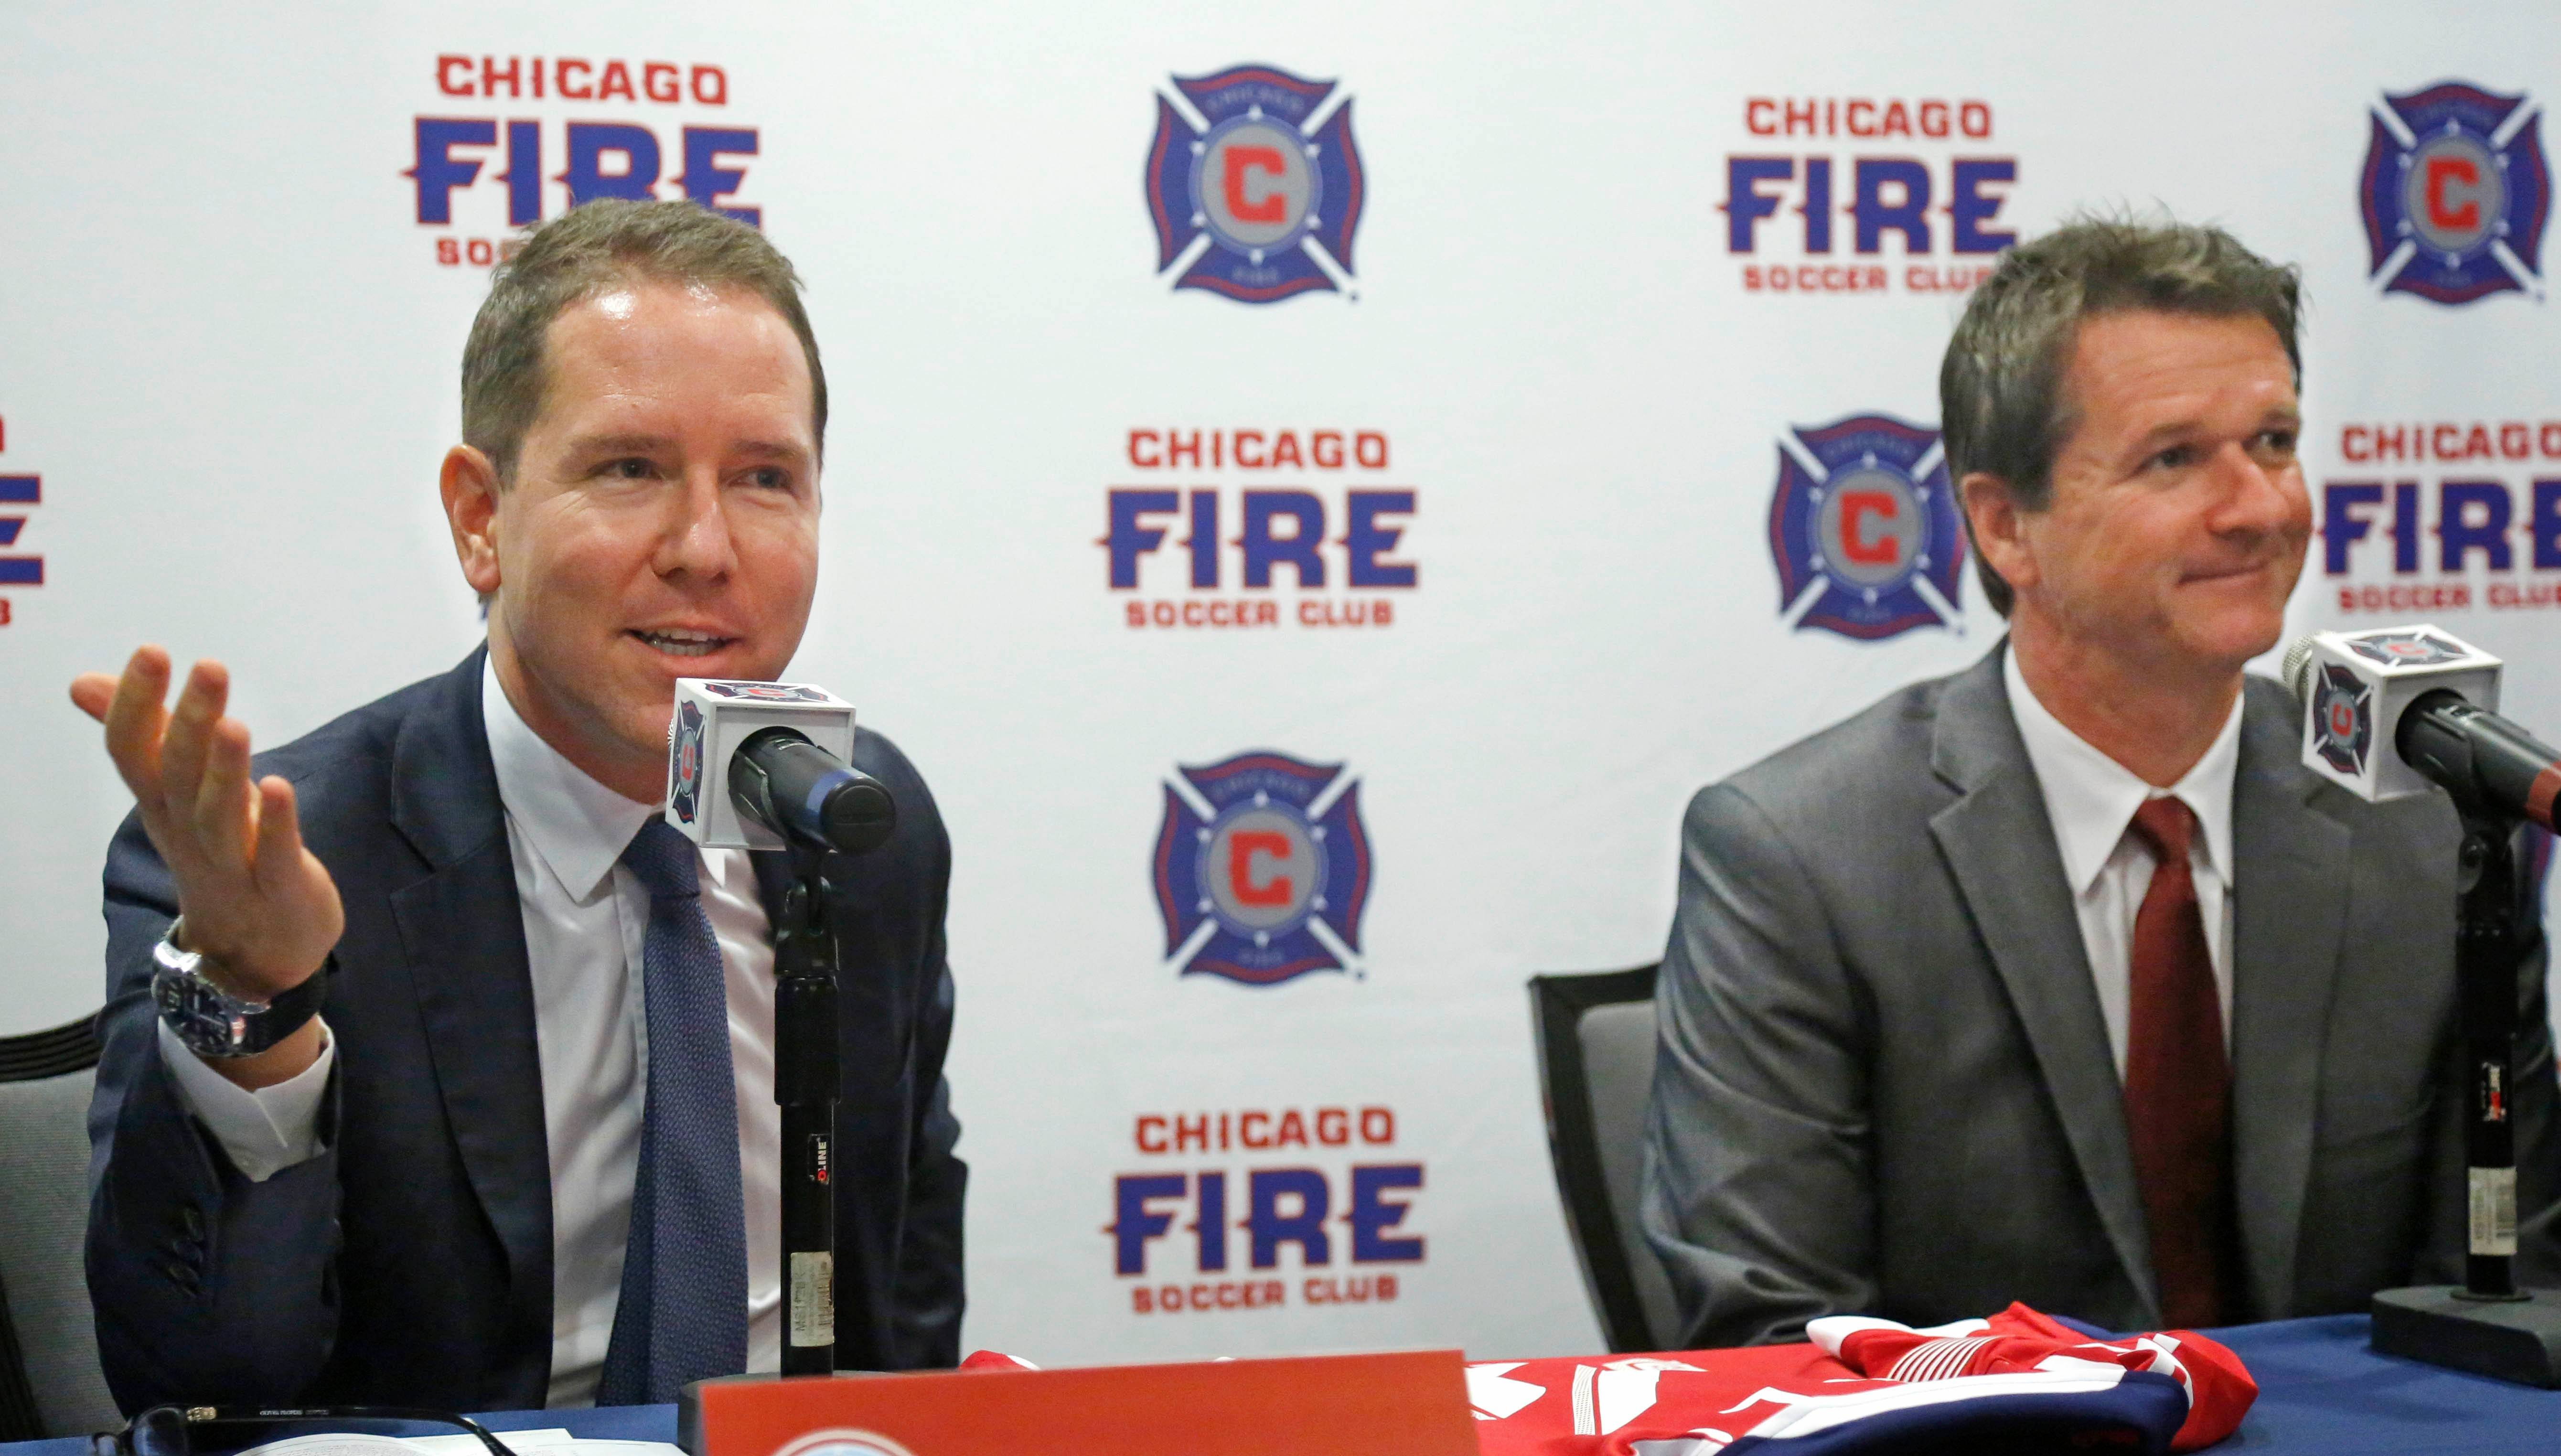 Daily Herald soccer writer Orrin Schwarz says Chicago Fire owner Andrew Hauptman, left, needs to turn his team into a championship contender by signing at least two designated players in the off-season. At right is Fire coach Frank Yallop, whose team went 6-10-18 this season.